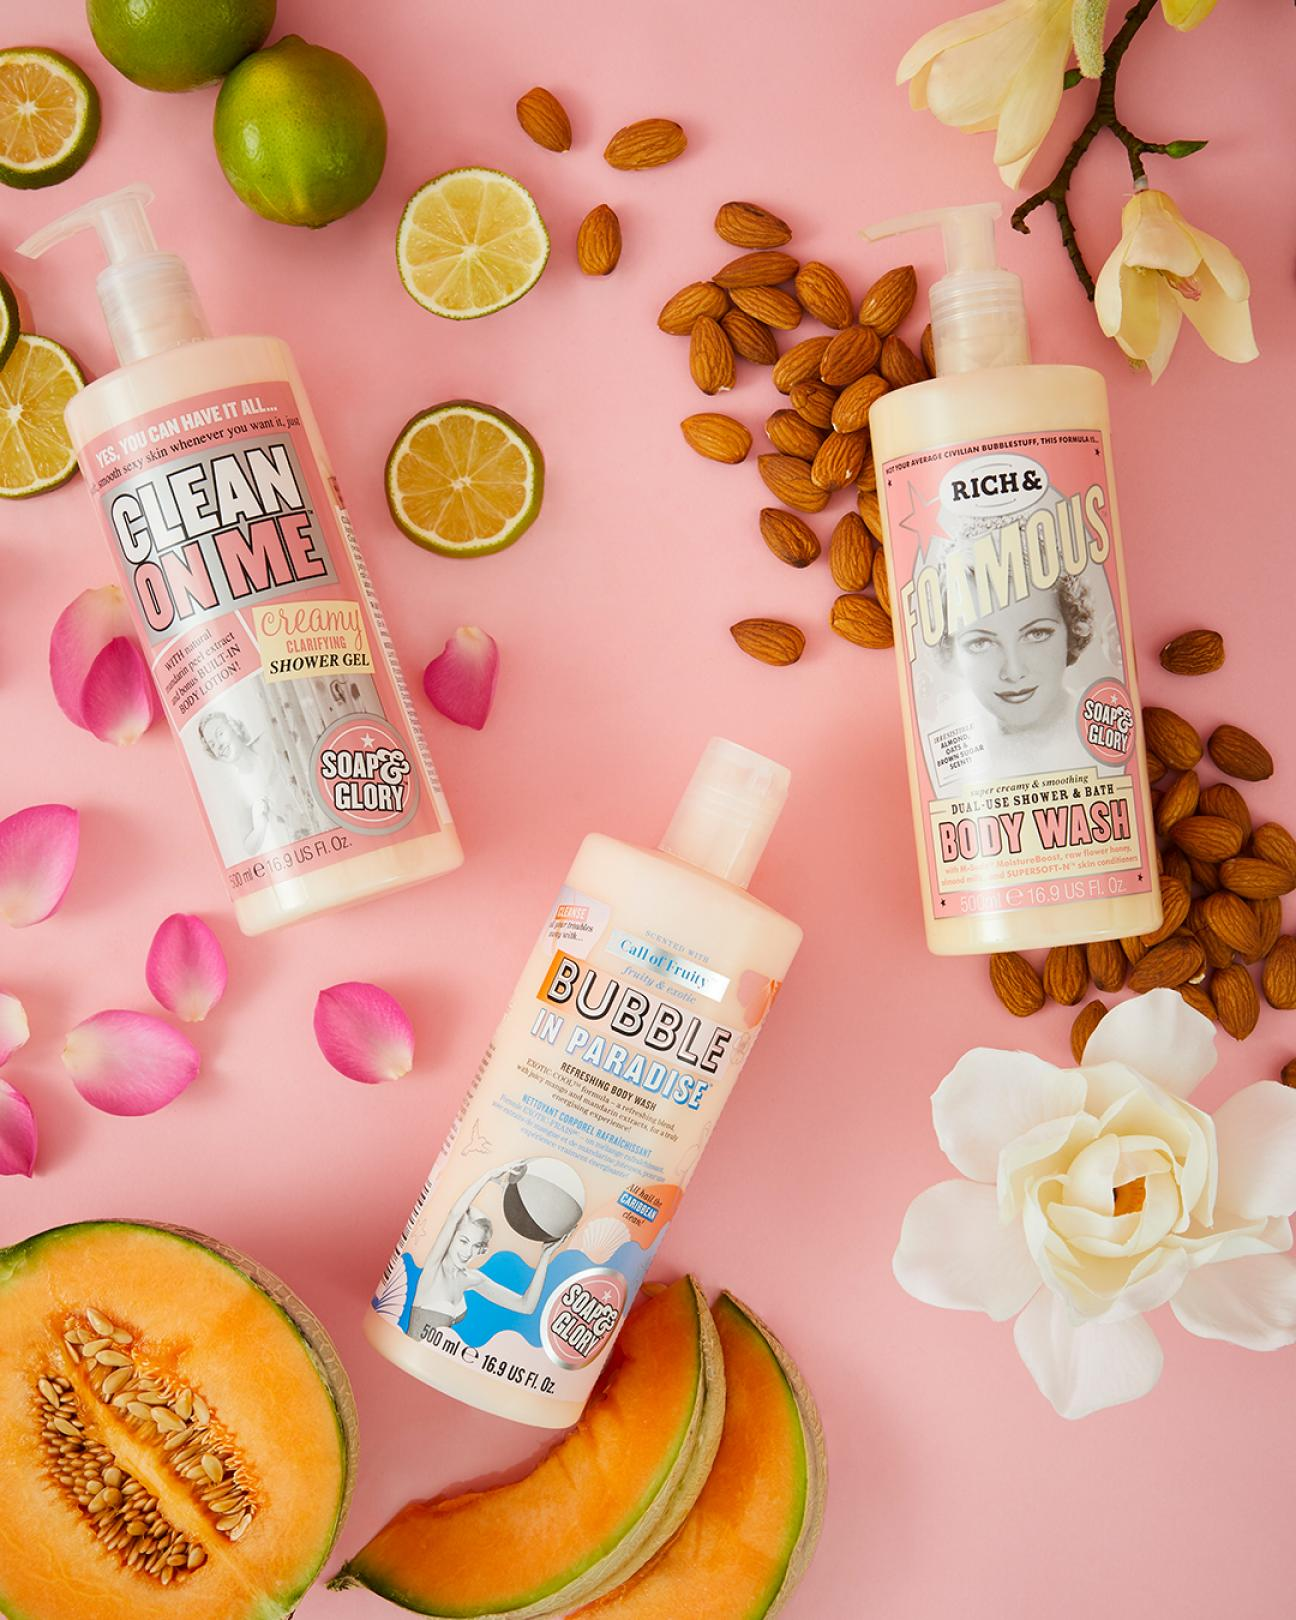 Three Soap and Glory body lotions